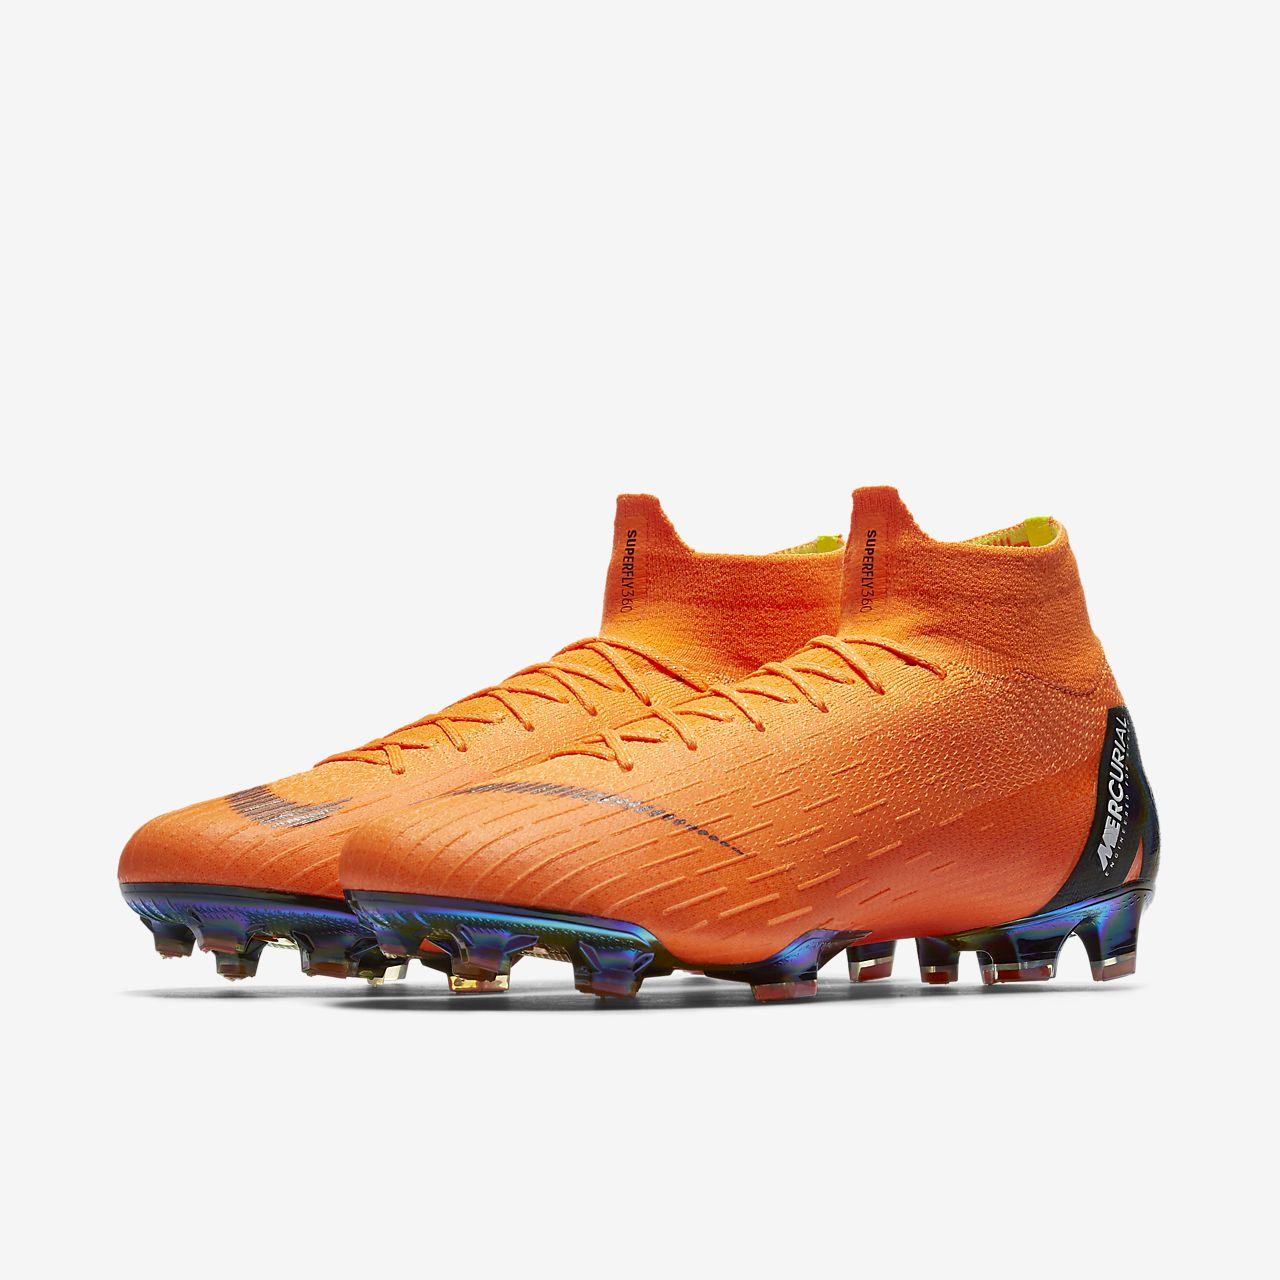 Scarpa da calcio per terreni duri Nike Mercurial Superfly 360 Elite